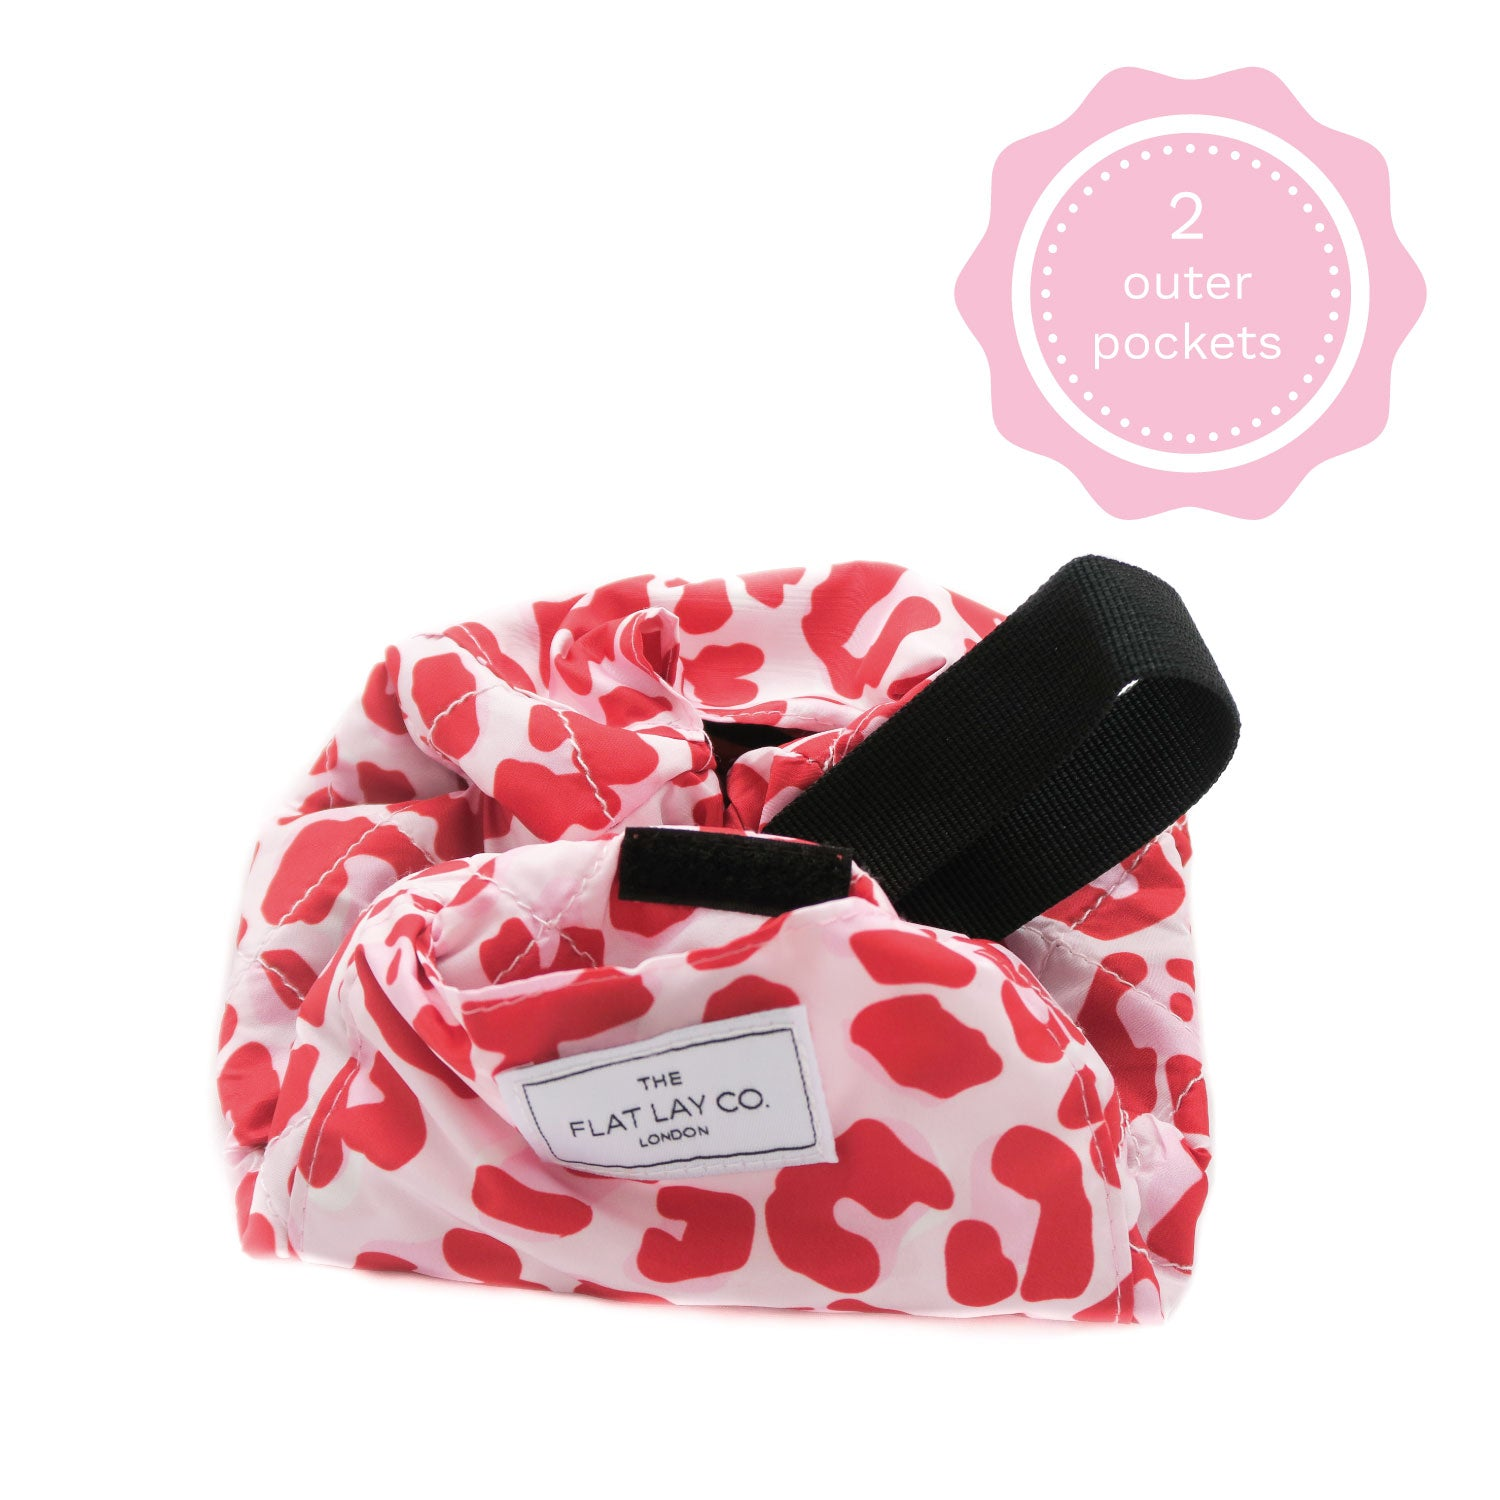 Mini Open Flat Makeup Bag Pink Leopard